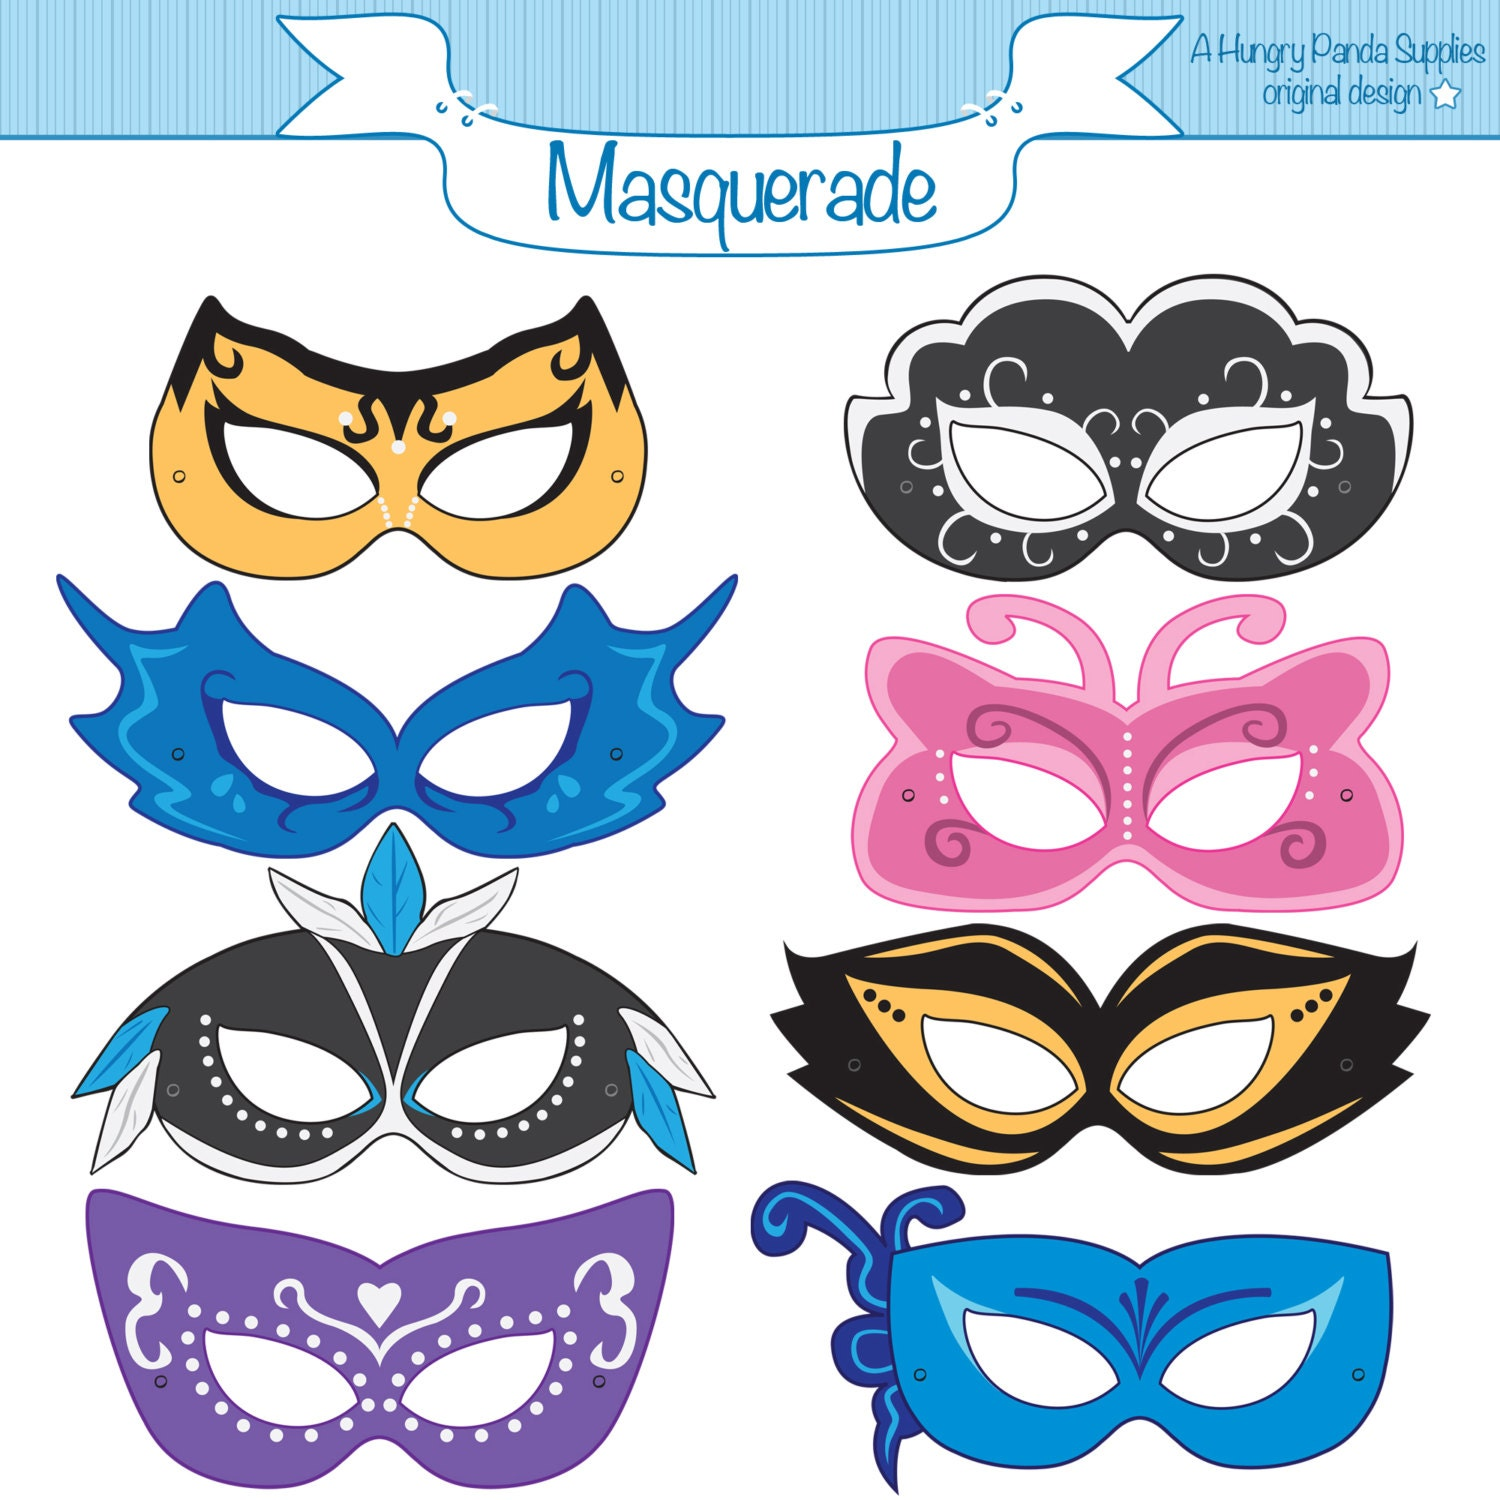 Impeccable image intended for printable masquerade mask templates